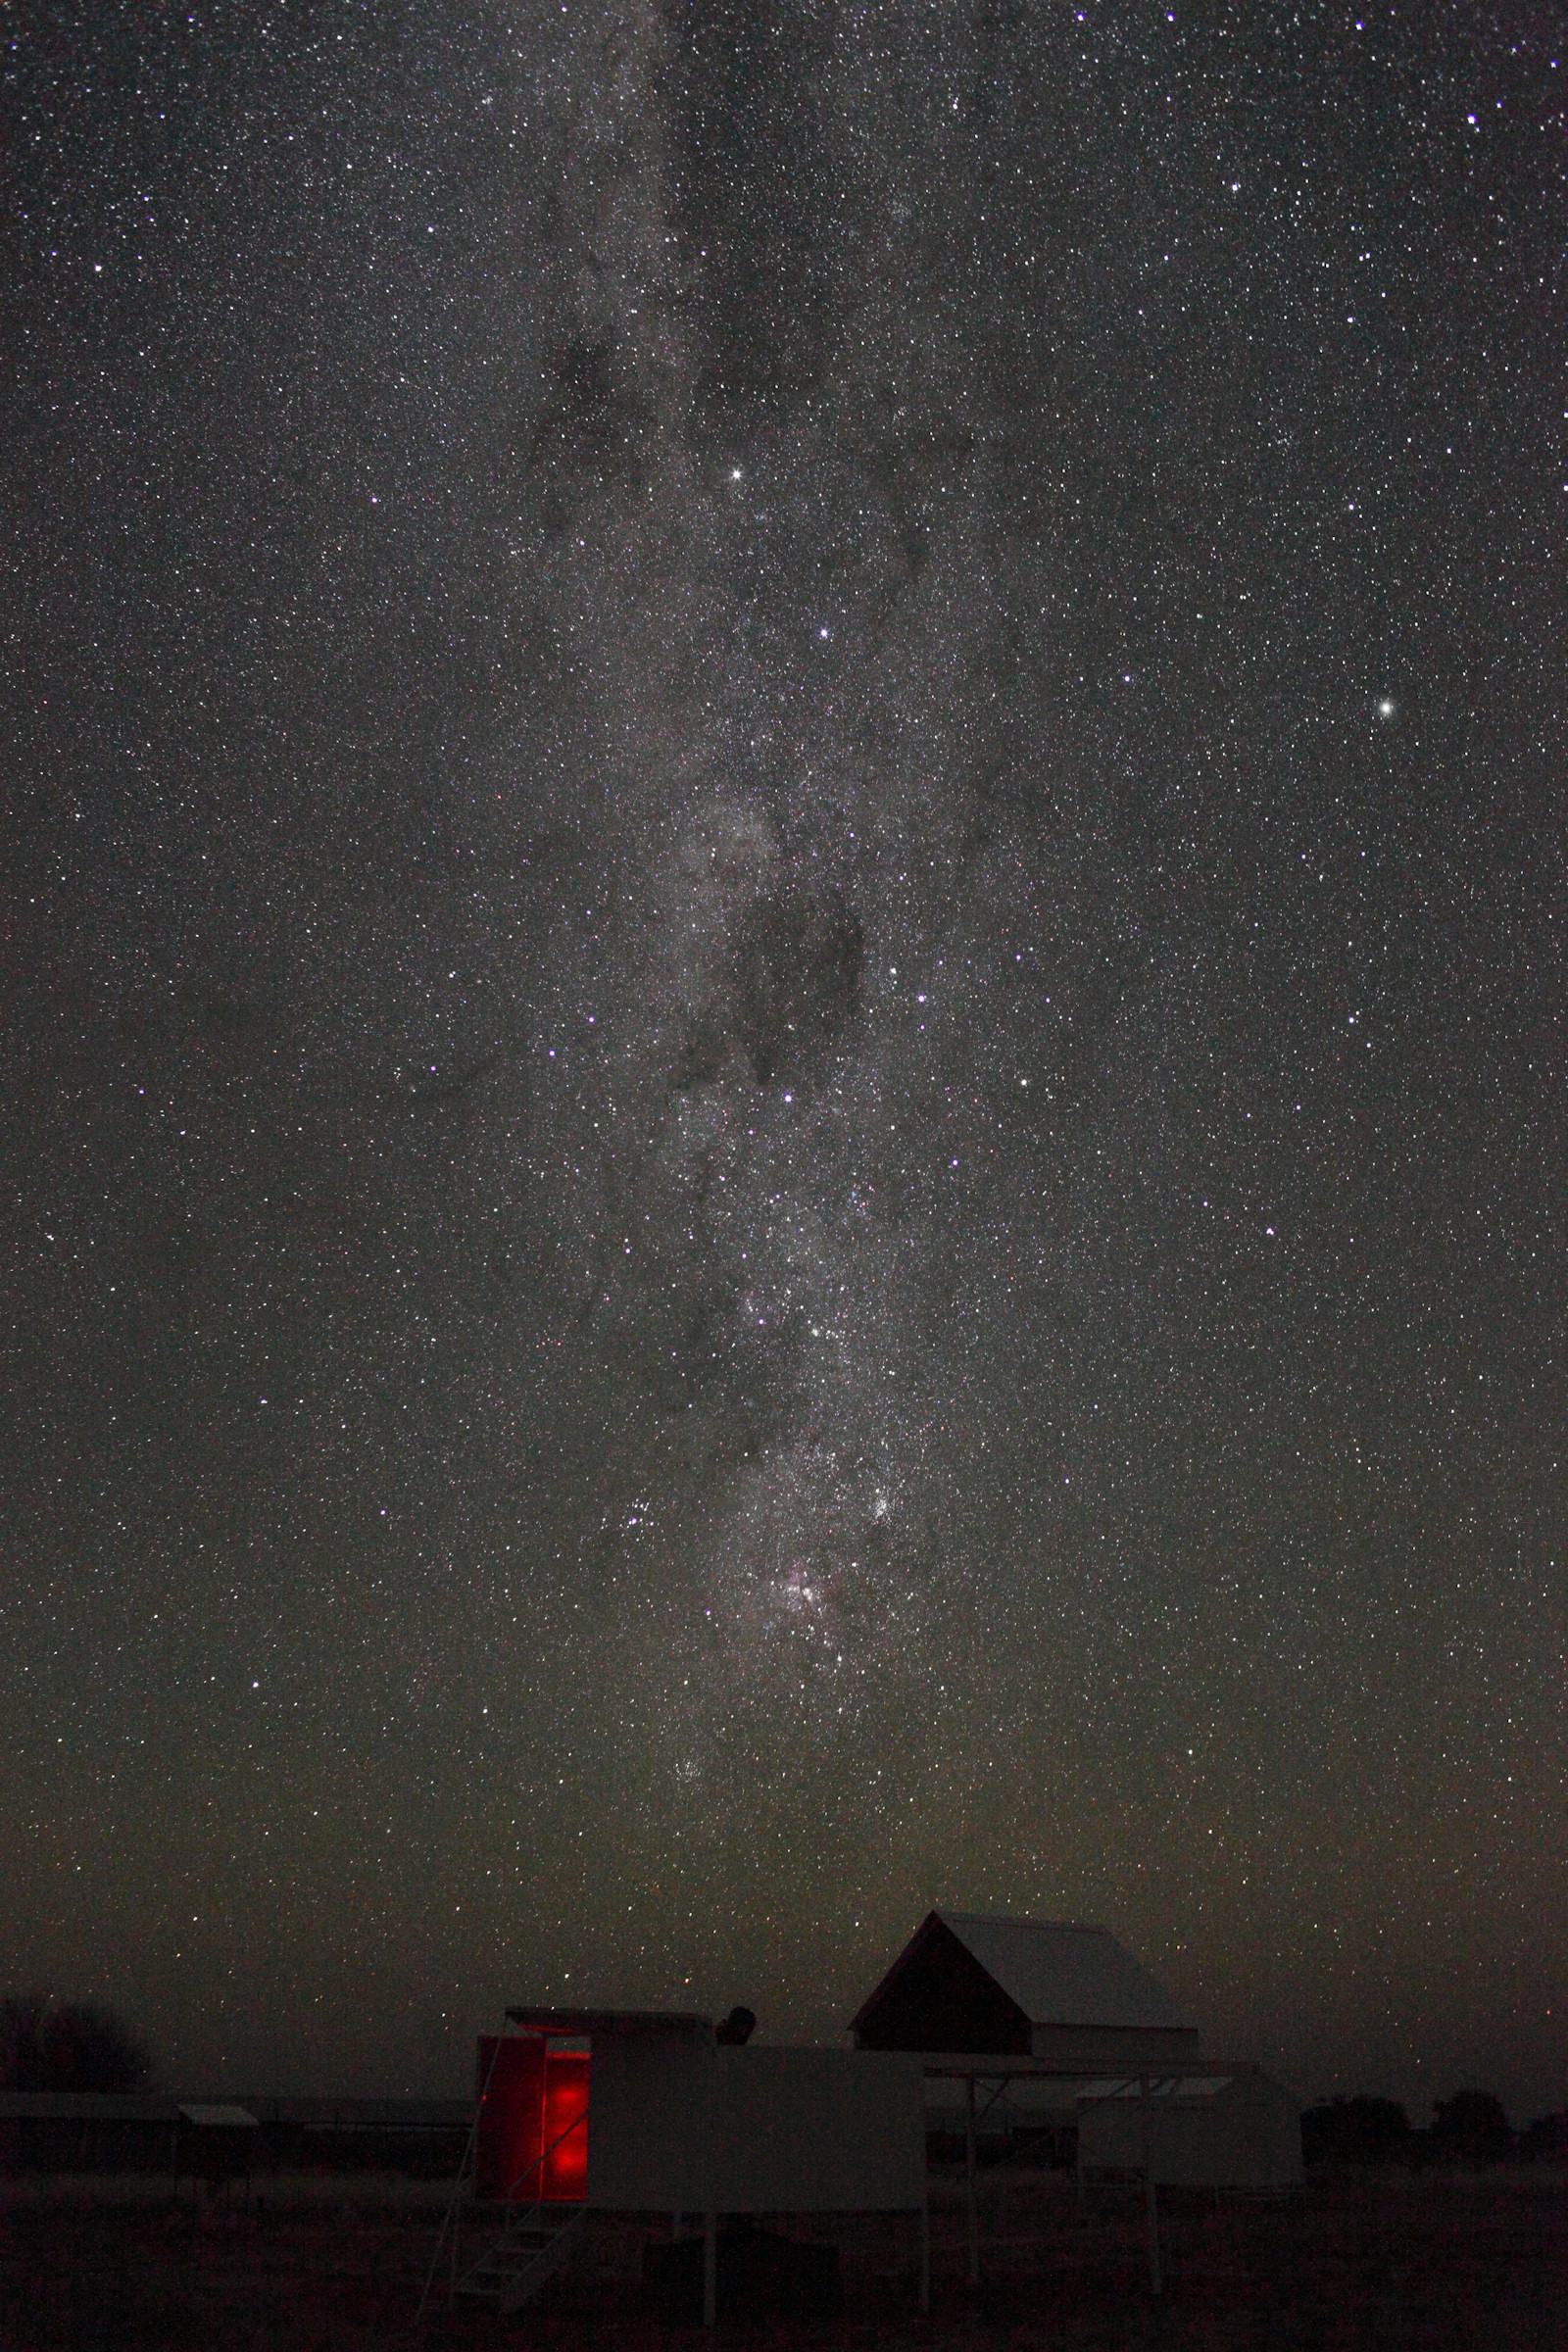 20120612-2306-Milkway-over-Atlax-observatory-5DII-15mm-F4-ISO6400-0145